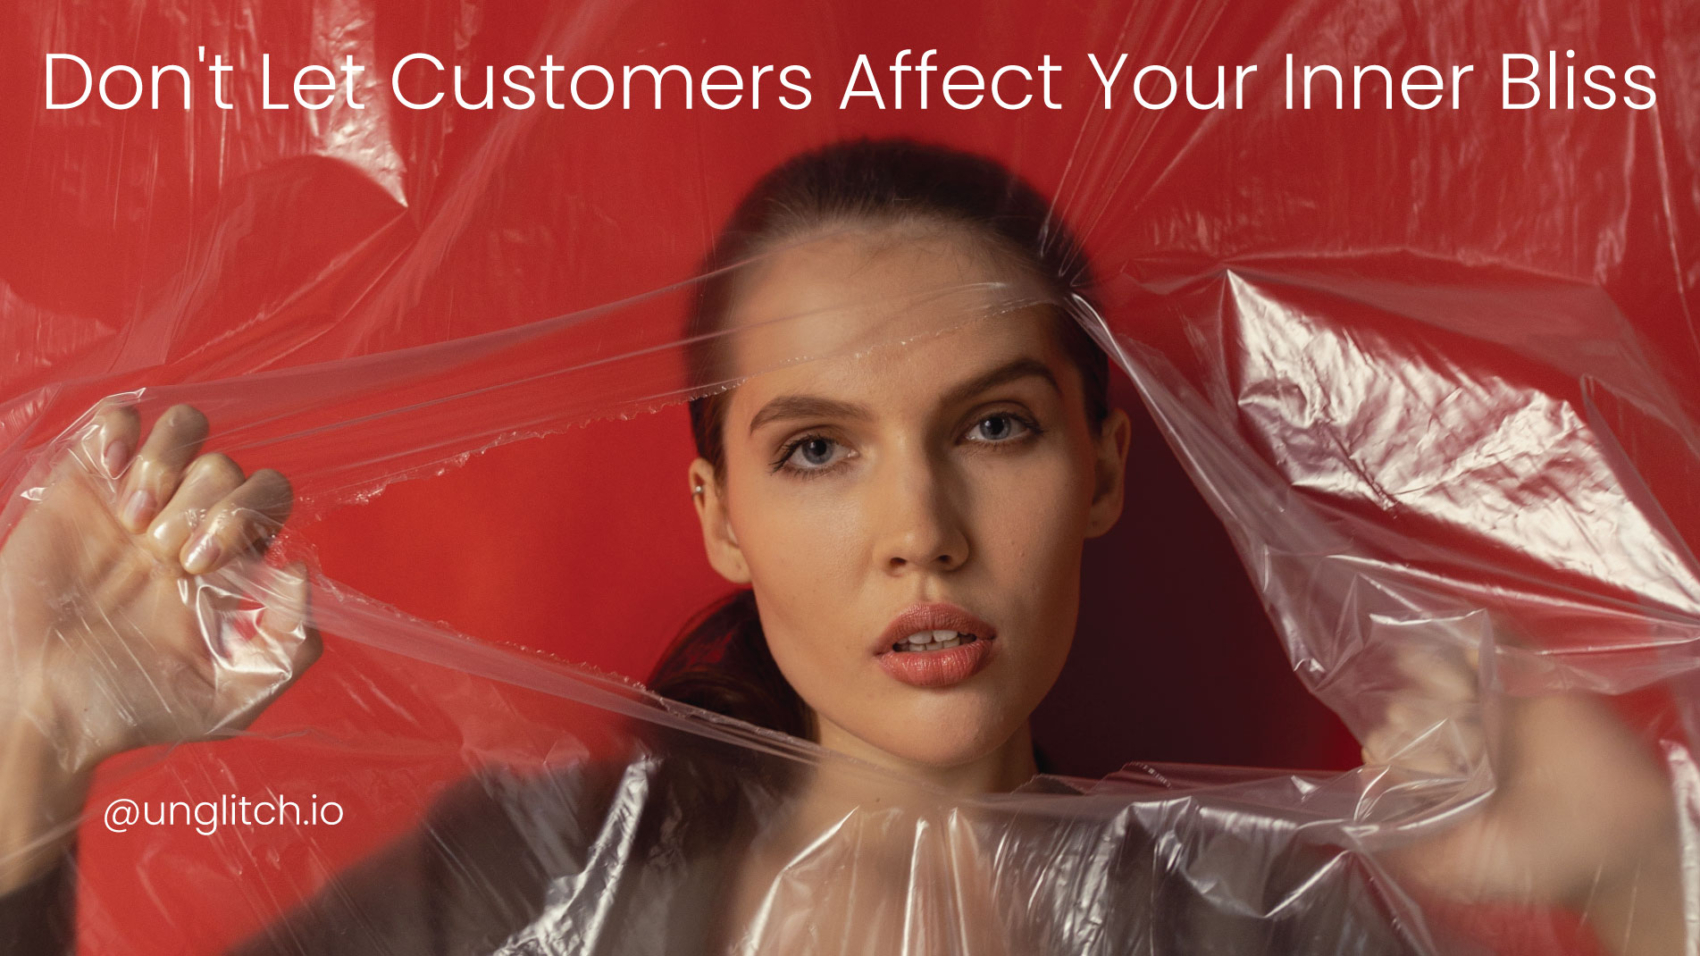 Don't-Let-Customers-Affect-Your-Inner-Bliss